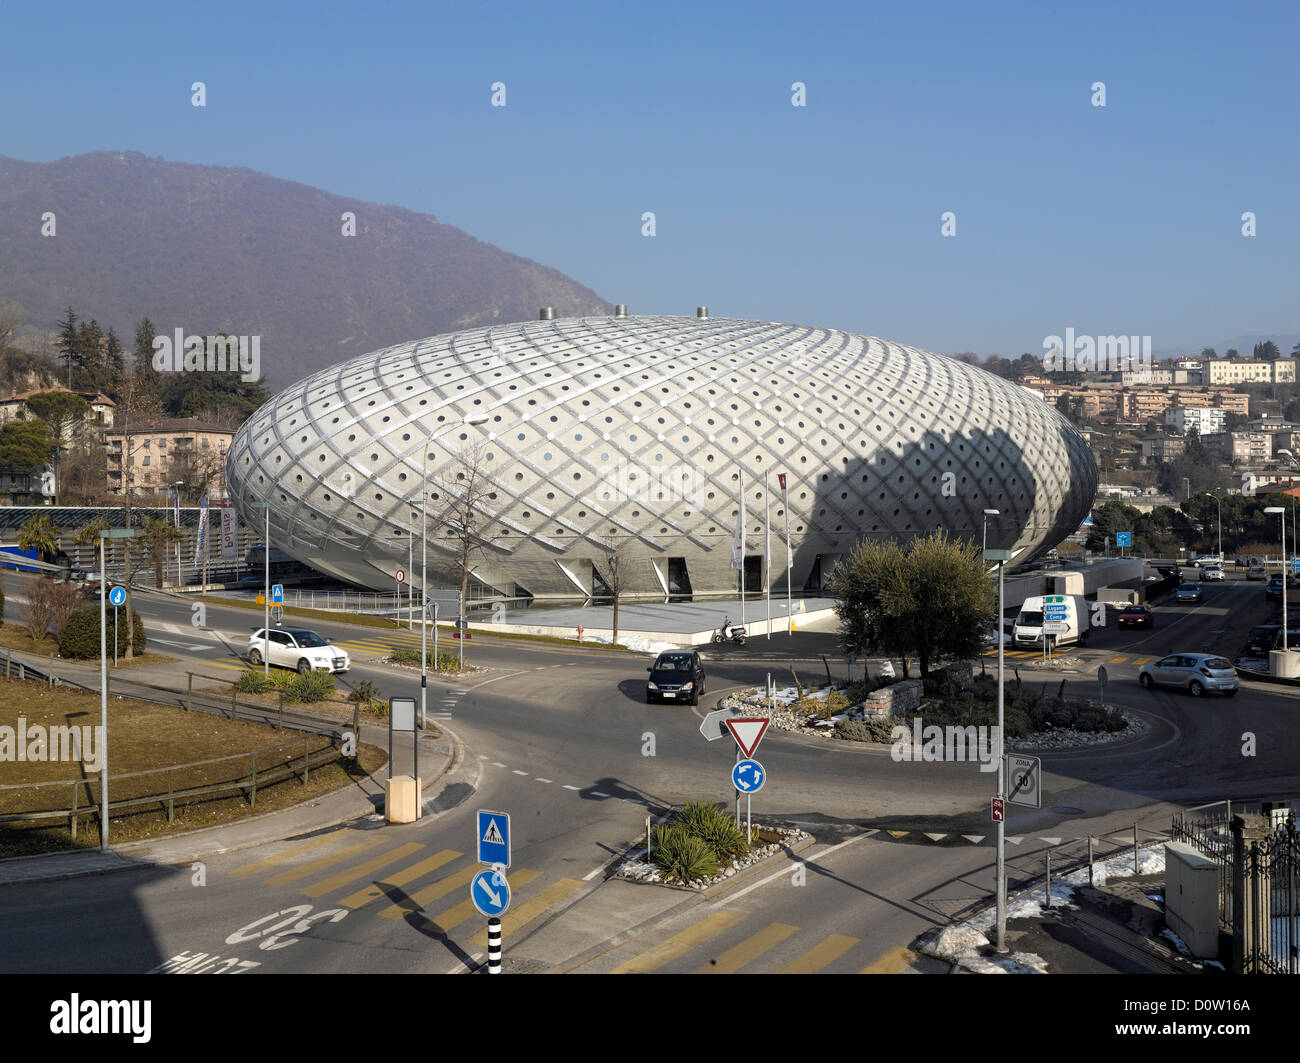 Modern Architecture Europe centro polaris, chiasso, switzerland, europe, modern, architecture